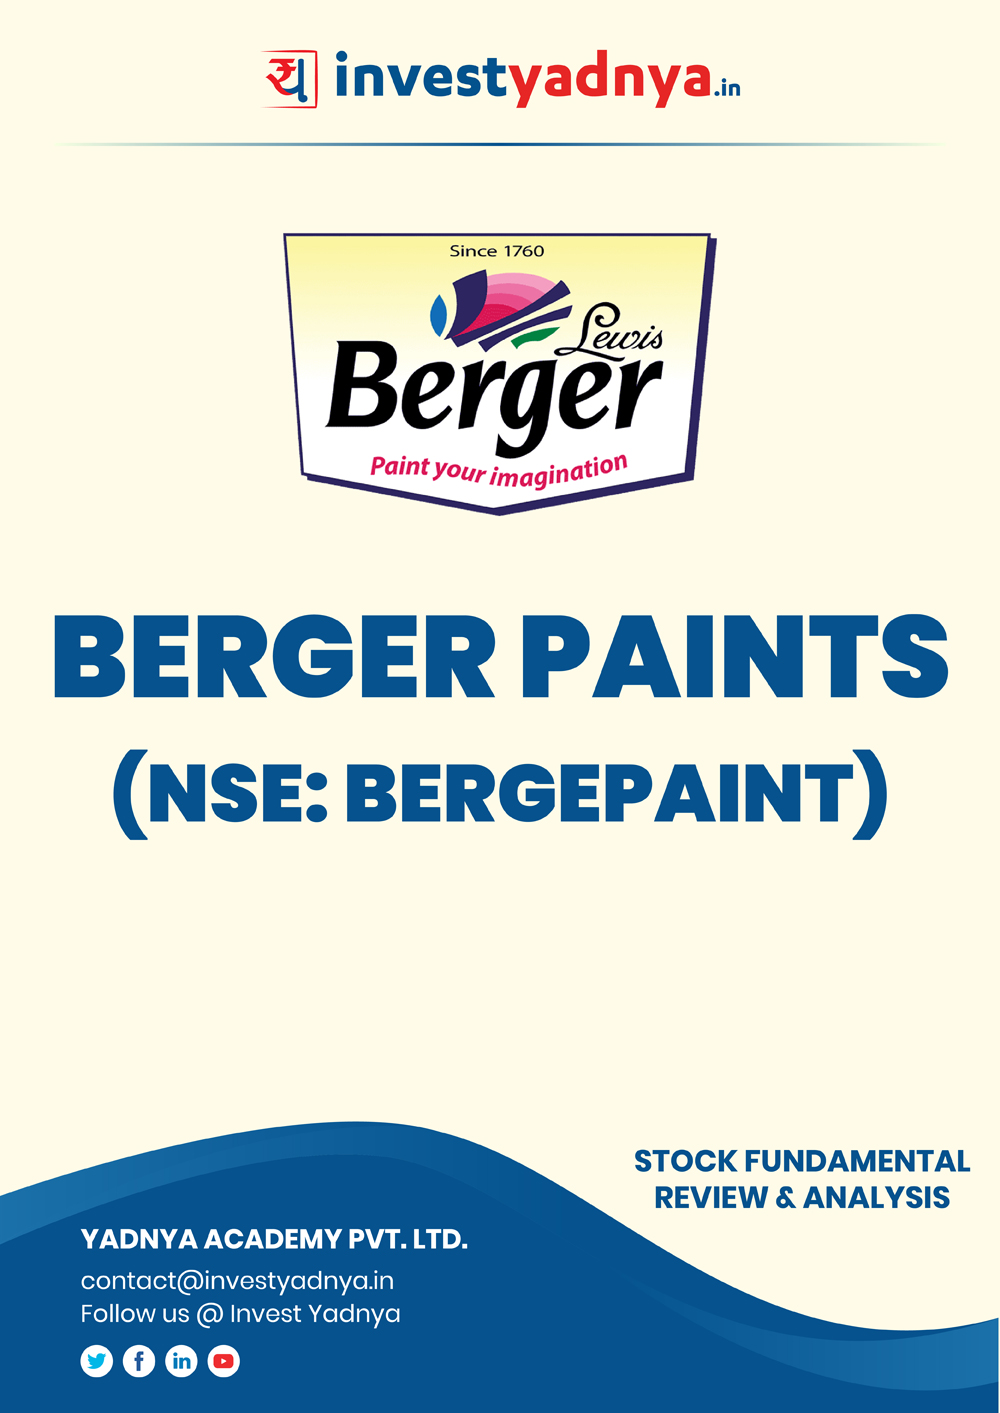 Berger Paints India Ltd. company/Stock Review & Analysis based on Q12019-20 and FY2018-19 data. The book contains Fundamental Analysis of the company considering both Quantitative (Financial) and Qualitative Parameters.